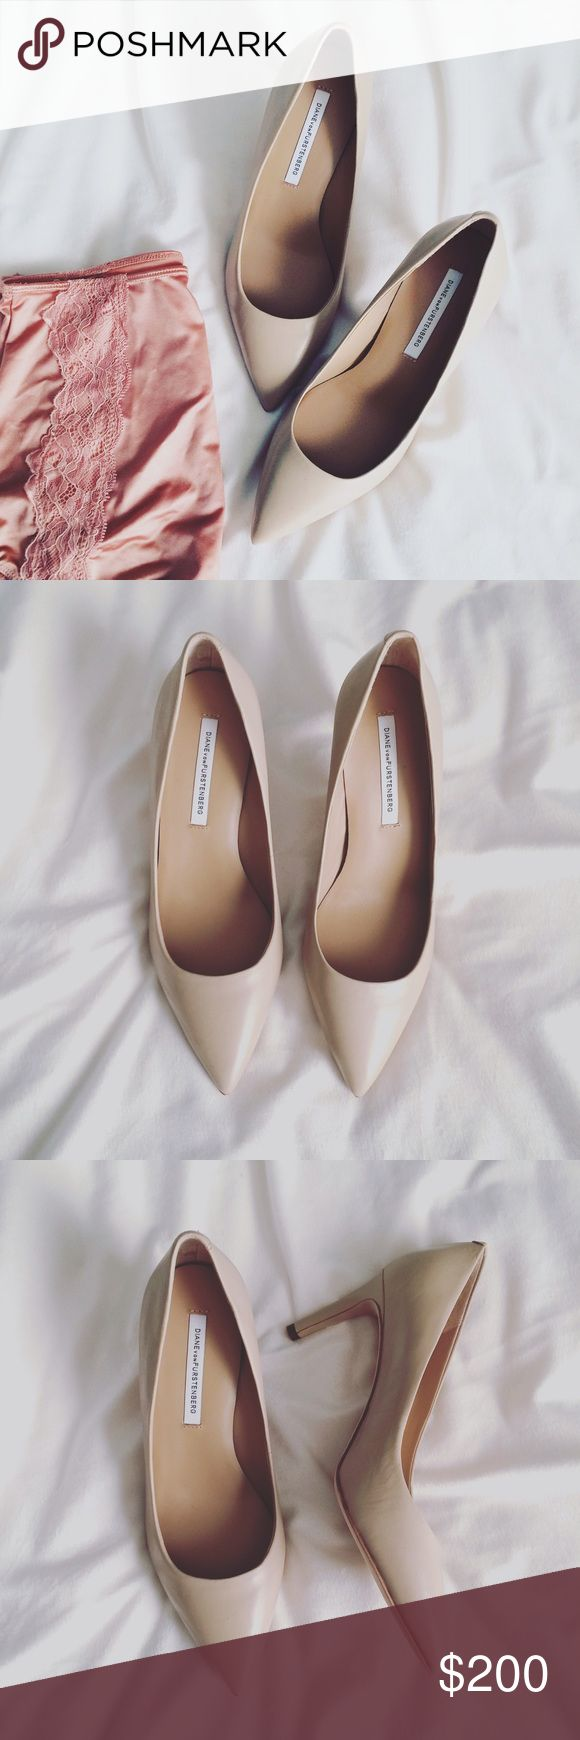 DVF Classy Cream Pumps Classy and always in style. Great condition! Worn once. 💕 Price firm 😊 Diane von Furstenberg Shoes Heels